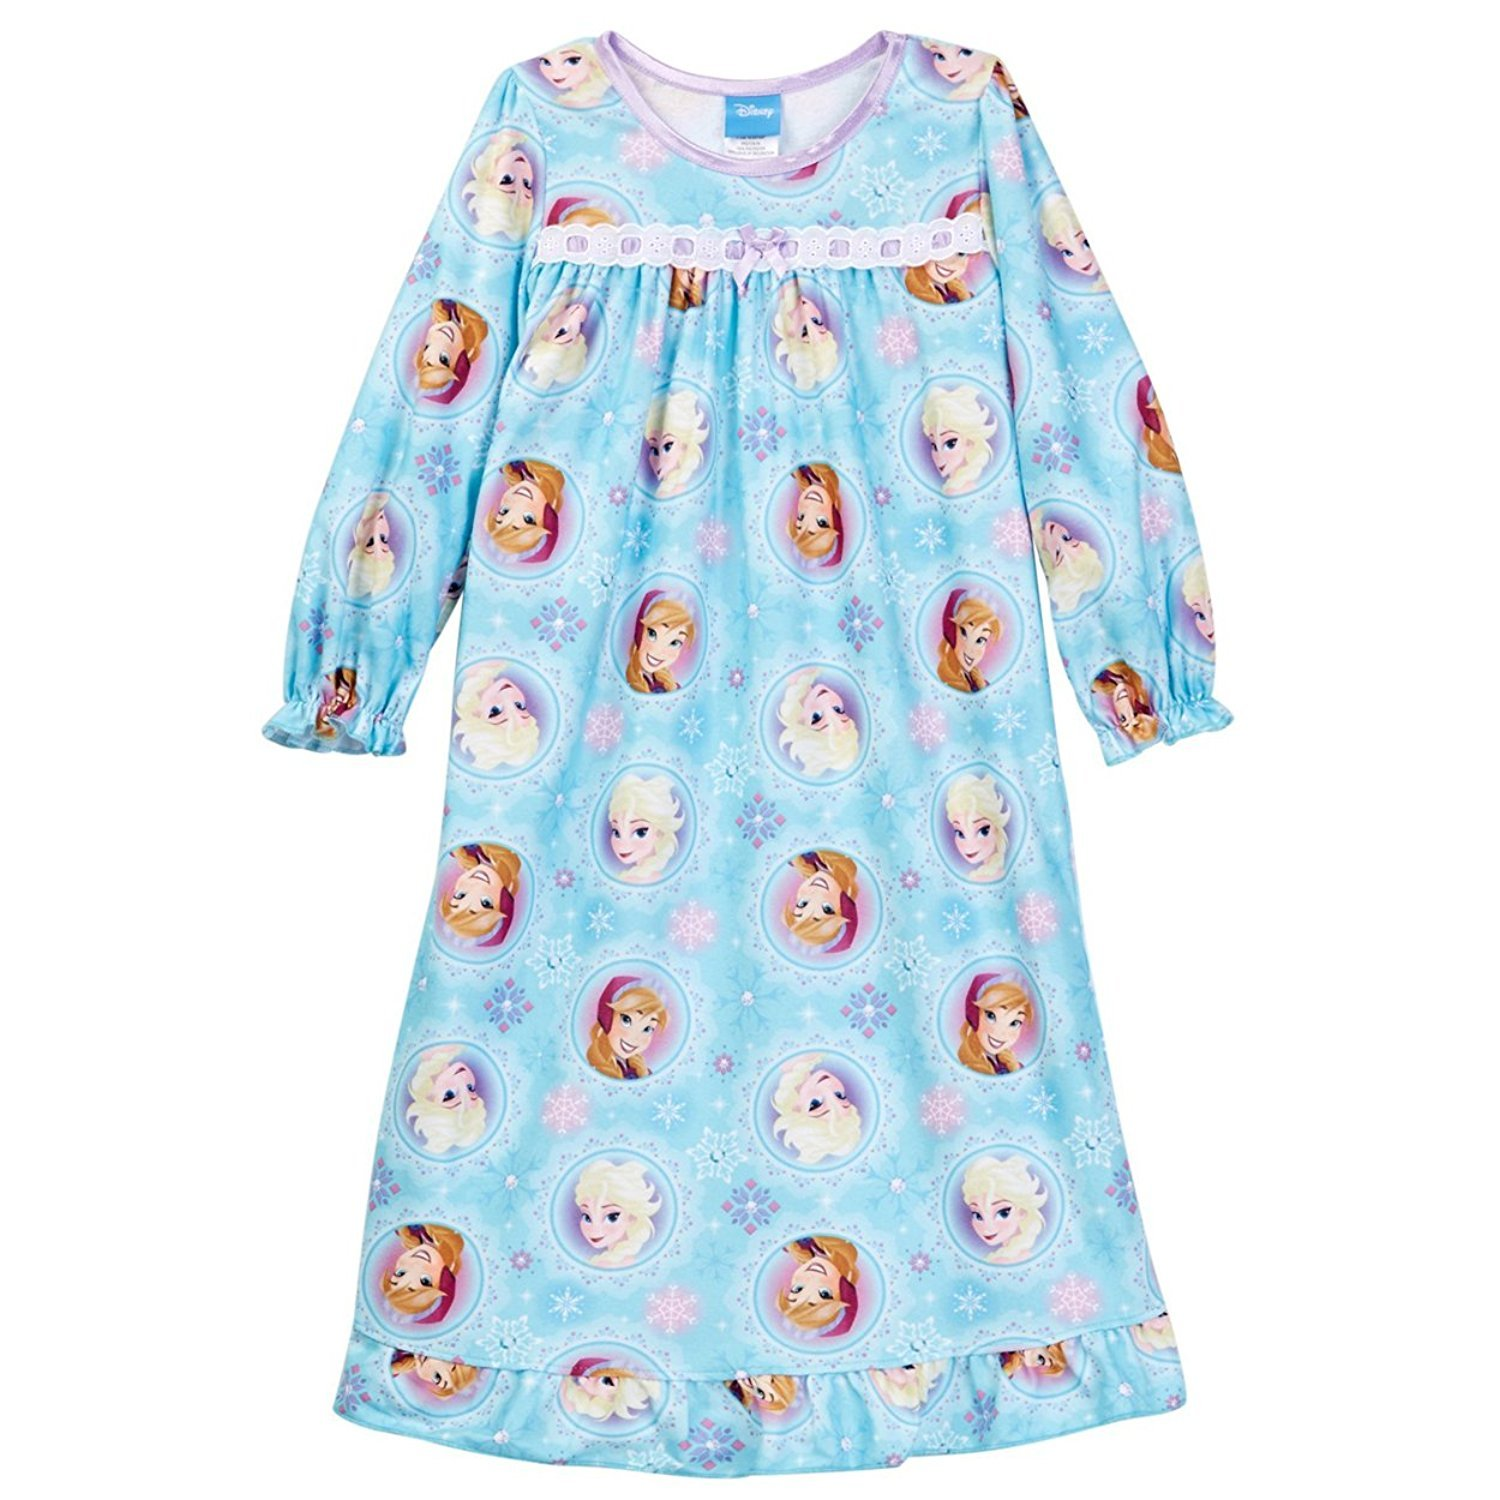 Amazon.com: Disney Princess Little Girls Granny Gown Nightgown (3T ...